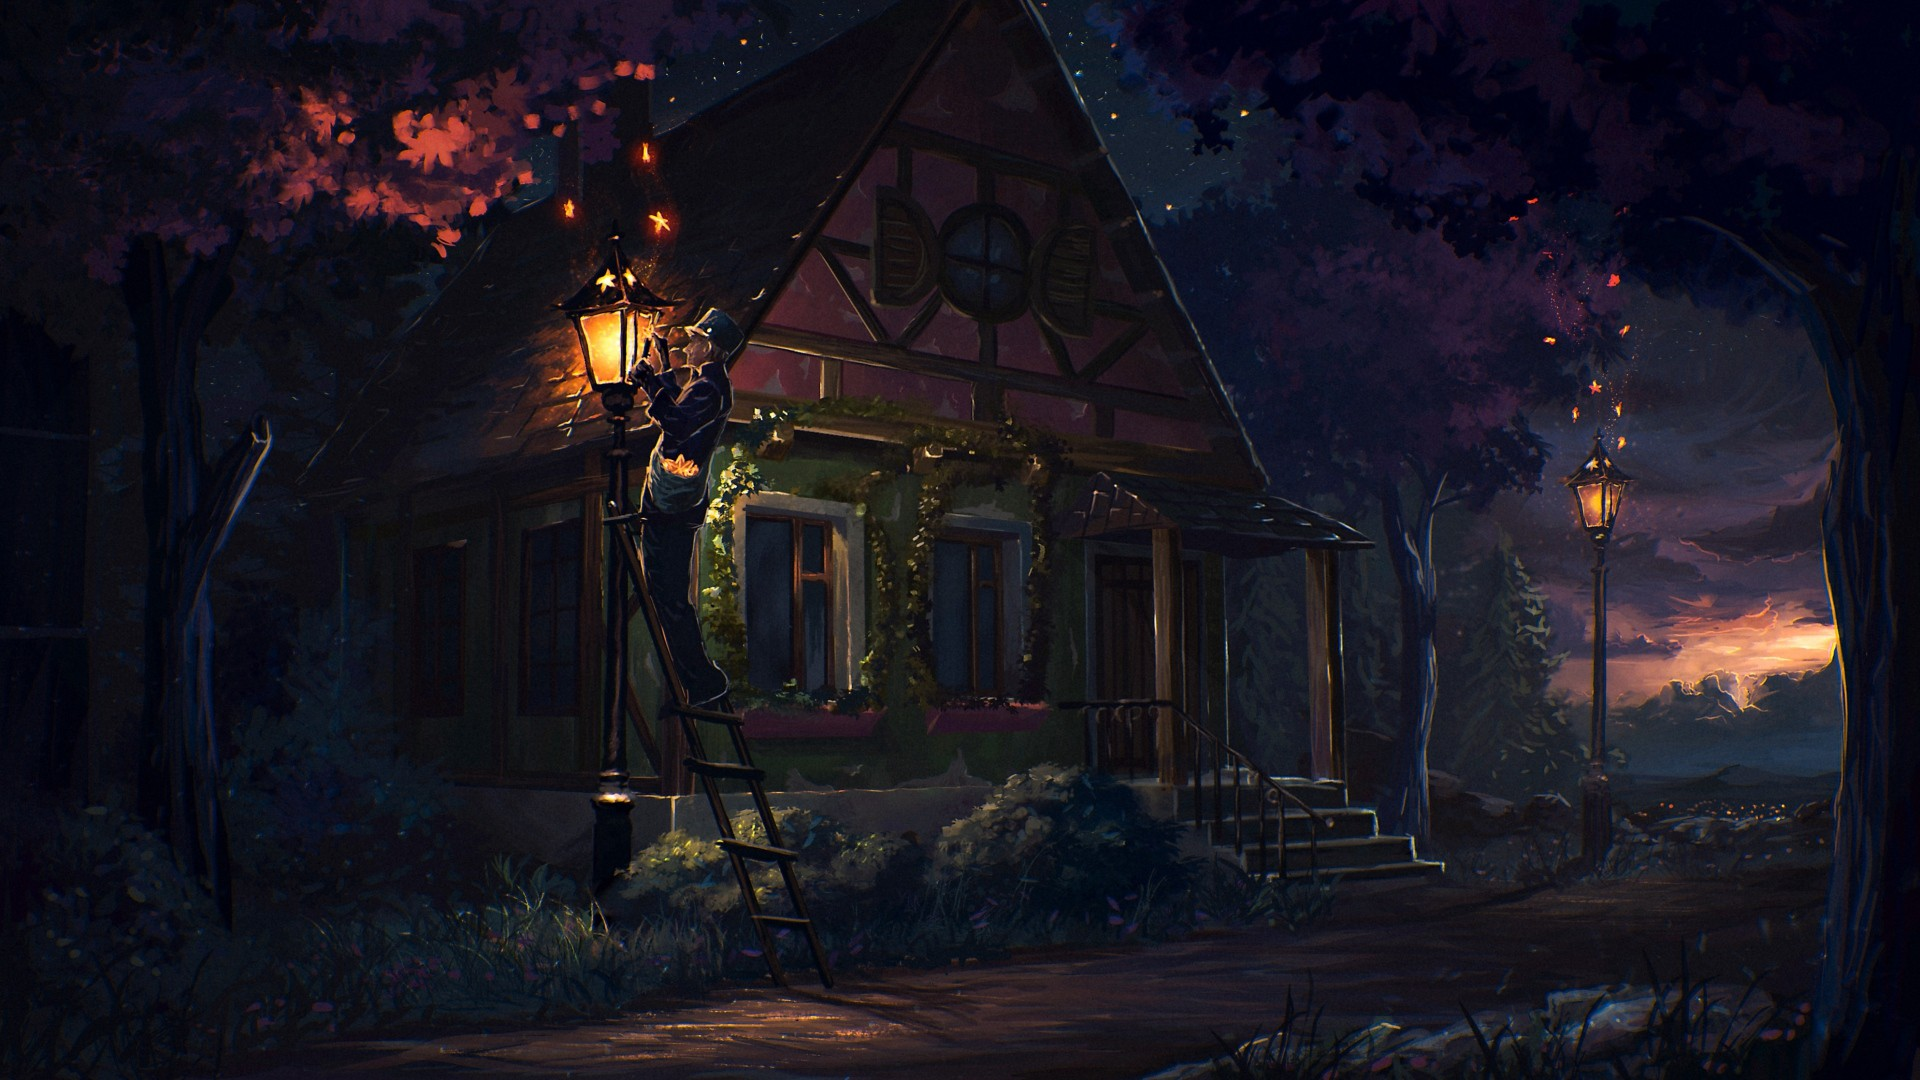 Street Light At Night Painting Old People Fantasy Art Digital Art Street Light House